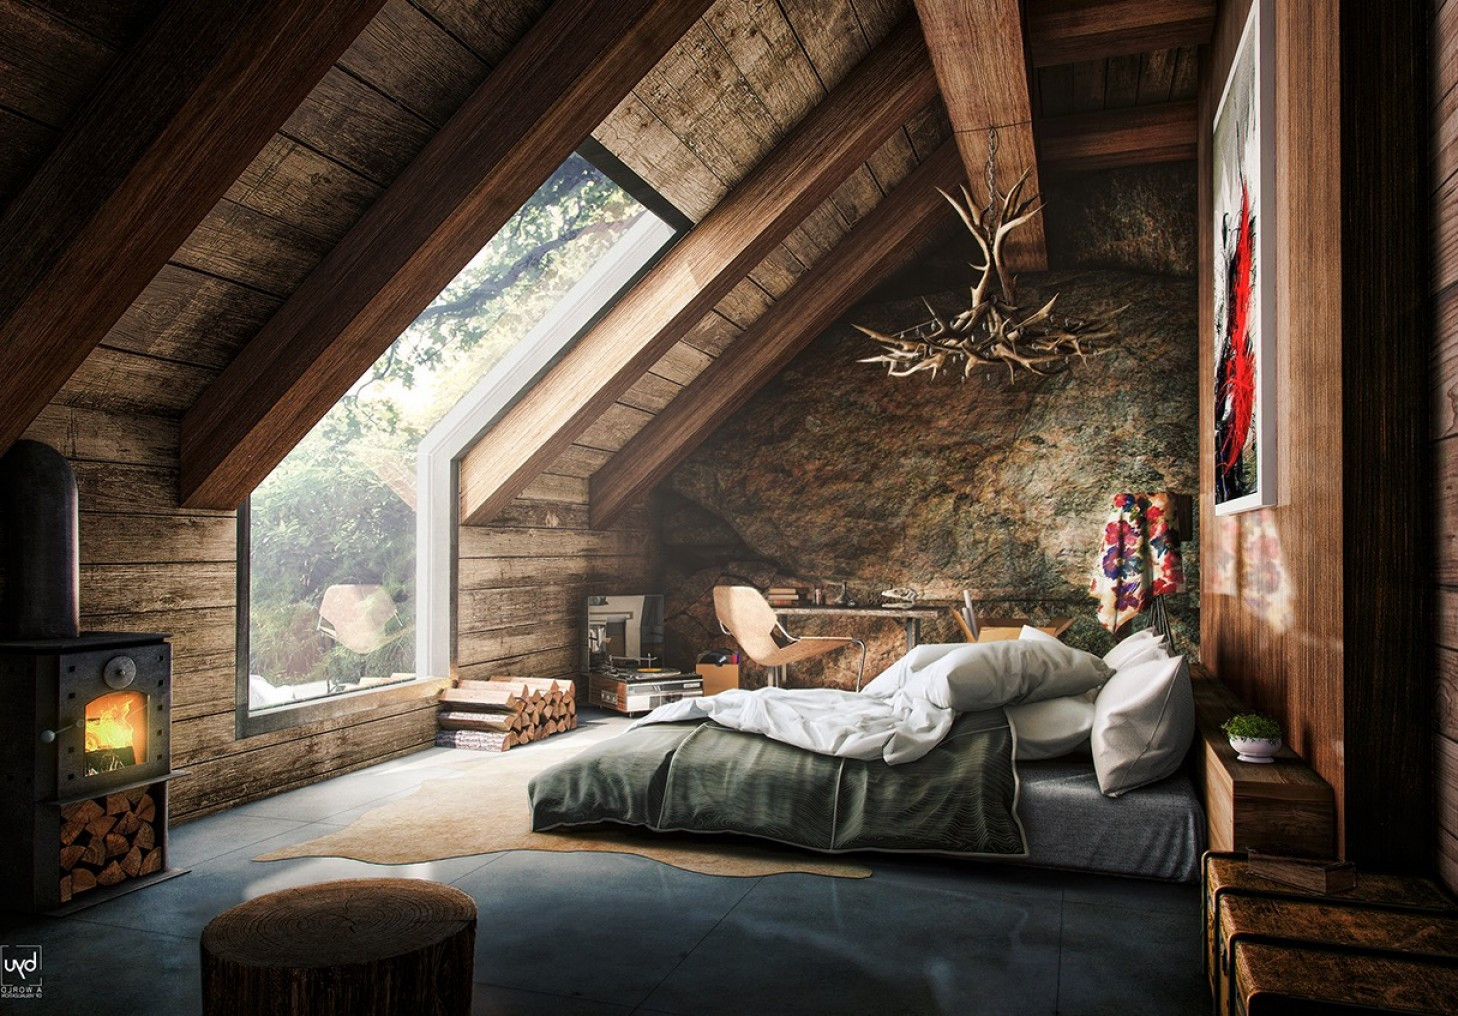 Best ideas about Loft Bedroom Ideas . Save or Pin 26 Luxury Loft Bedroom Ideas To Enhance Your Home Now.